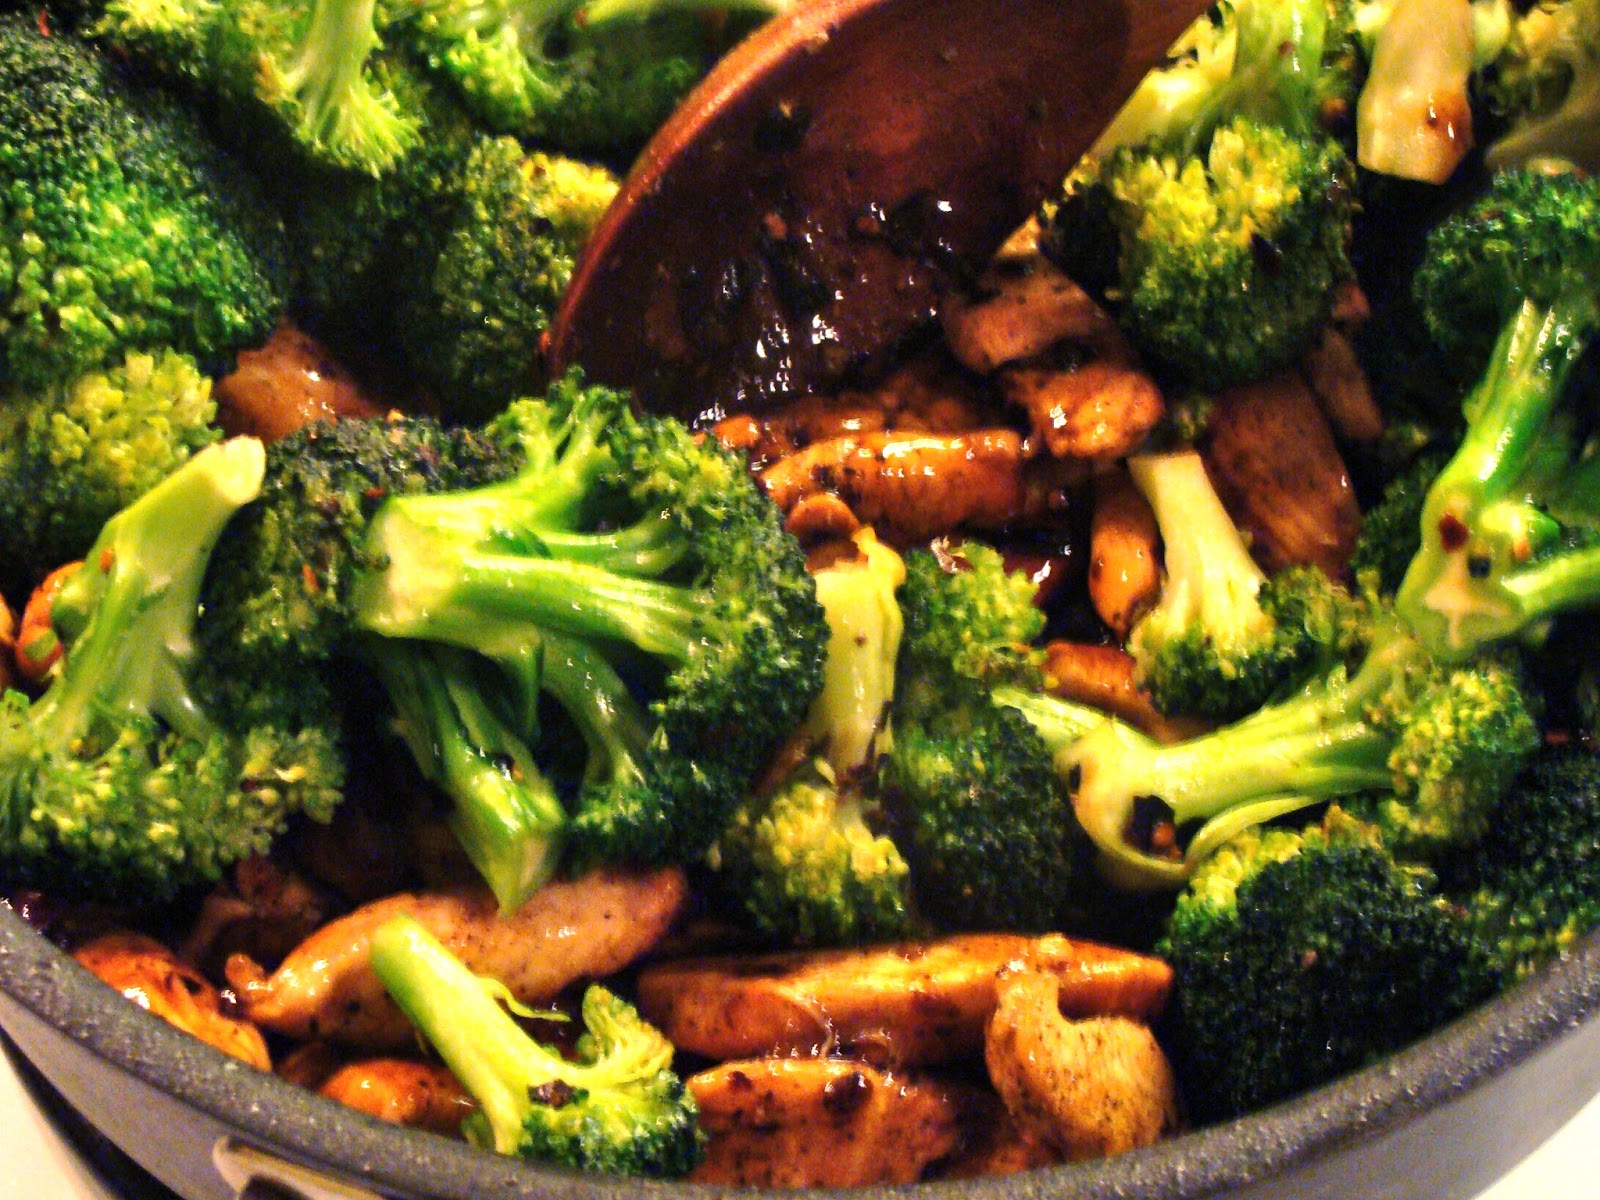 Low carb chinese food recipes food recipe low carb chinese en and broccoli the quest sugar free paleo peanut healthy chinese food recipe forumfinder Gallery